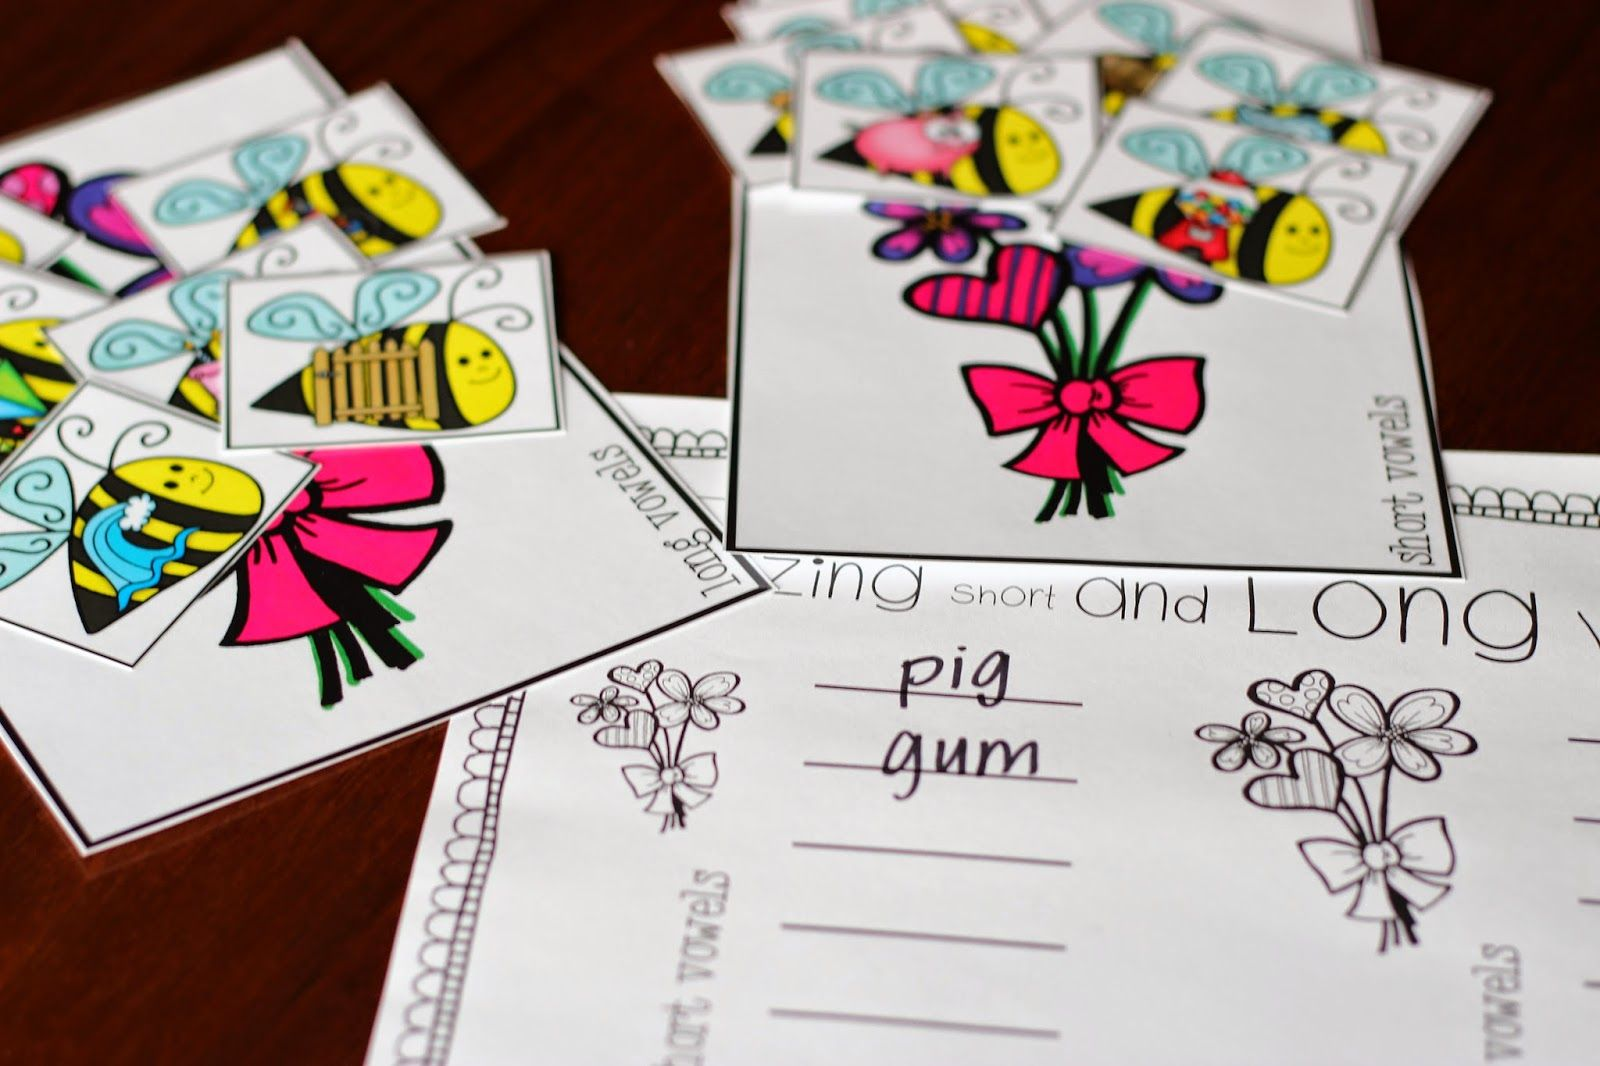 Buzzing Short And Long Vowels Students Will Sort The Bee